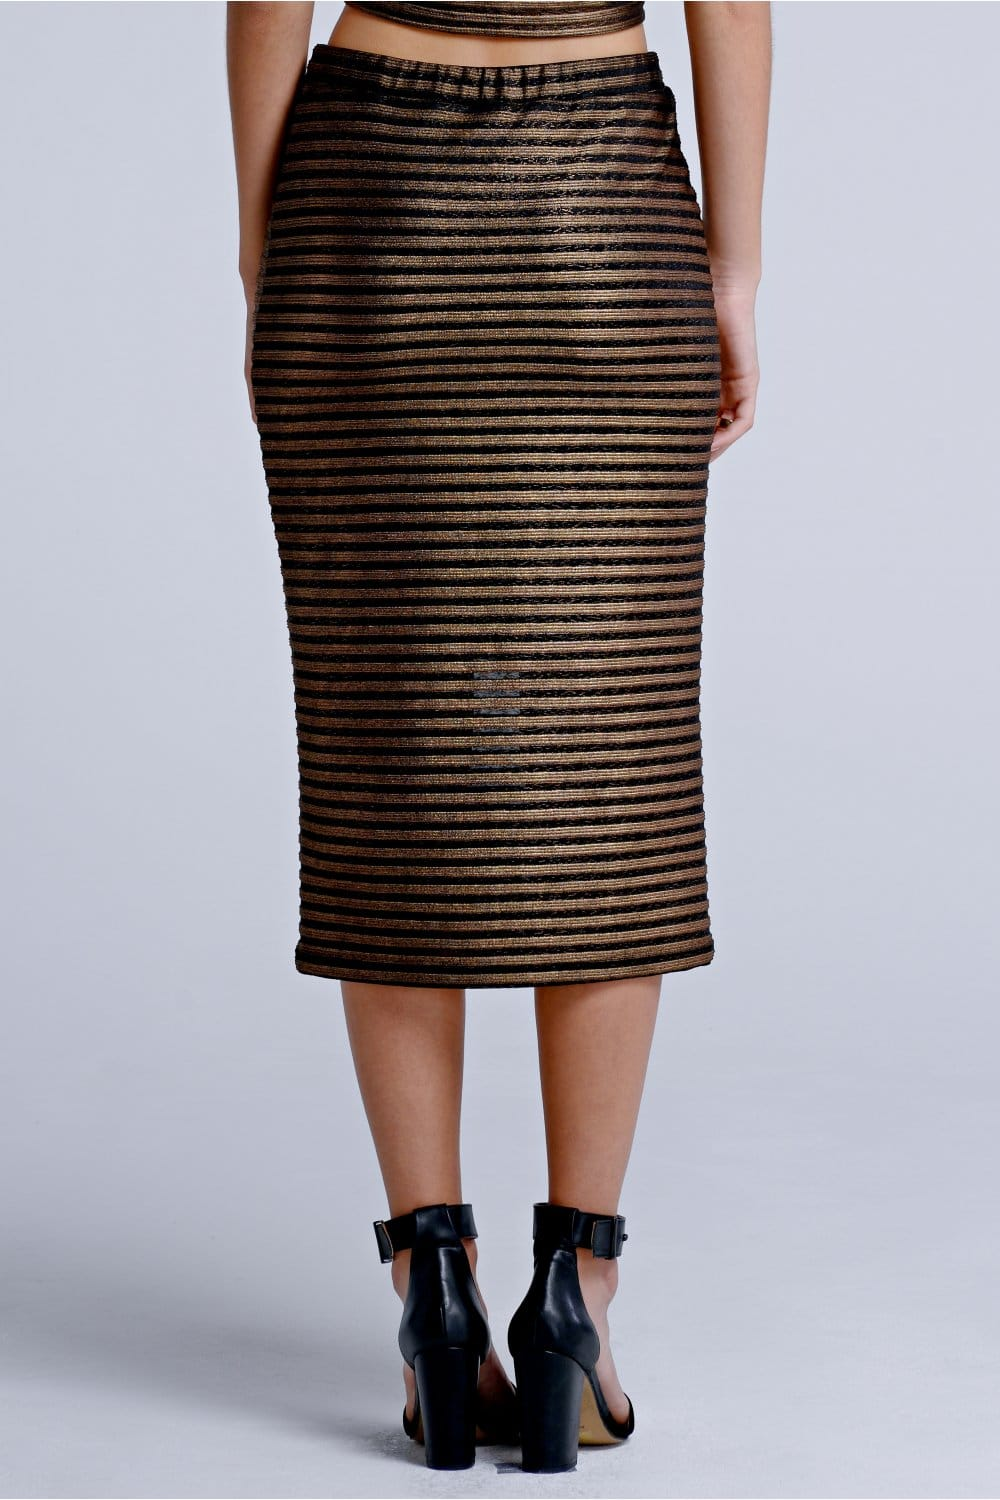 Outlet Girls On Film Black and Gold Stripe Midi Skirt - Outlet ...